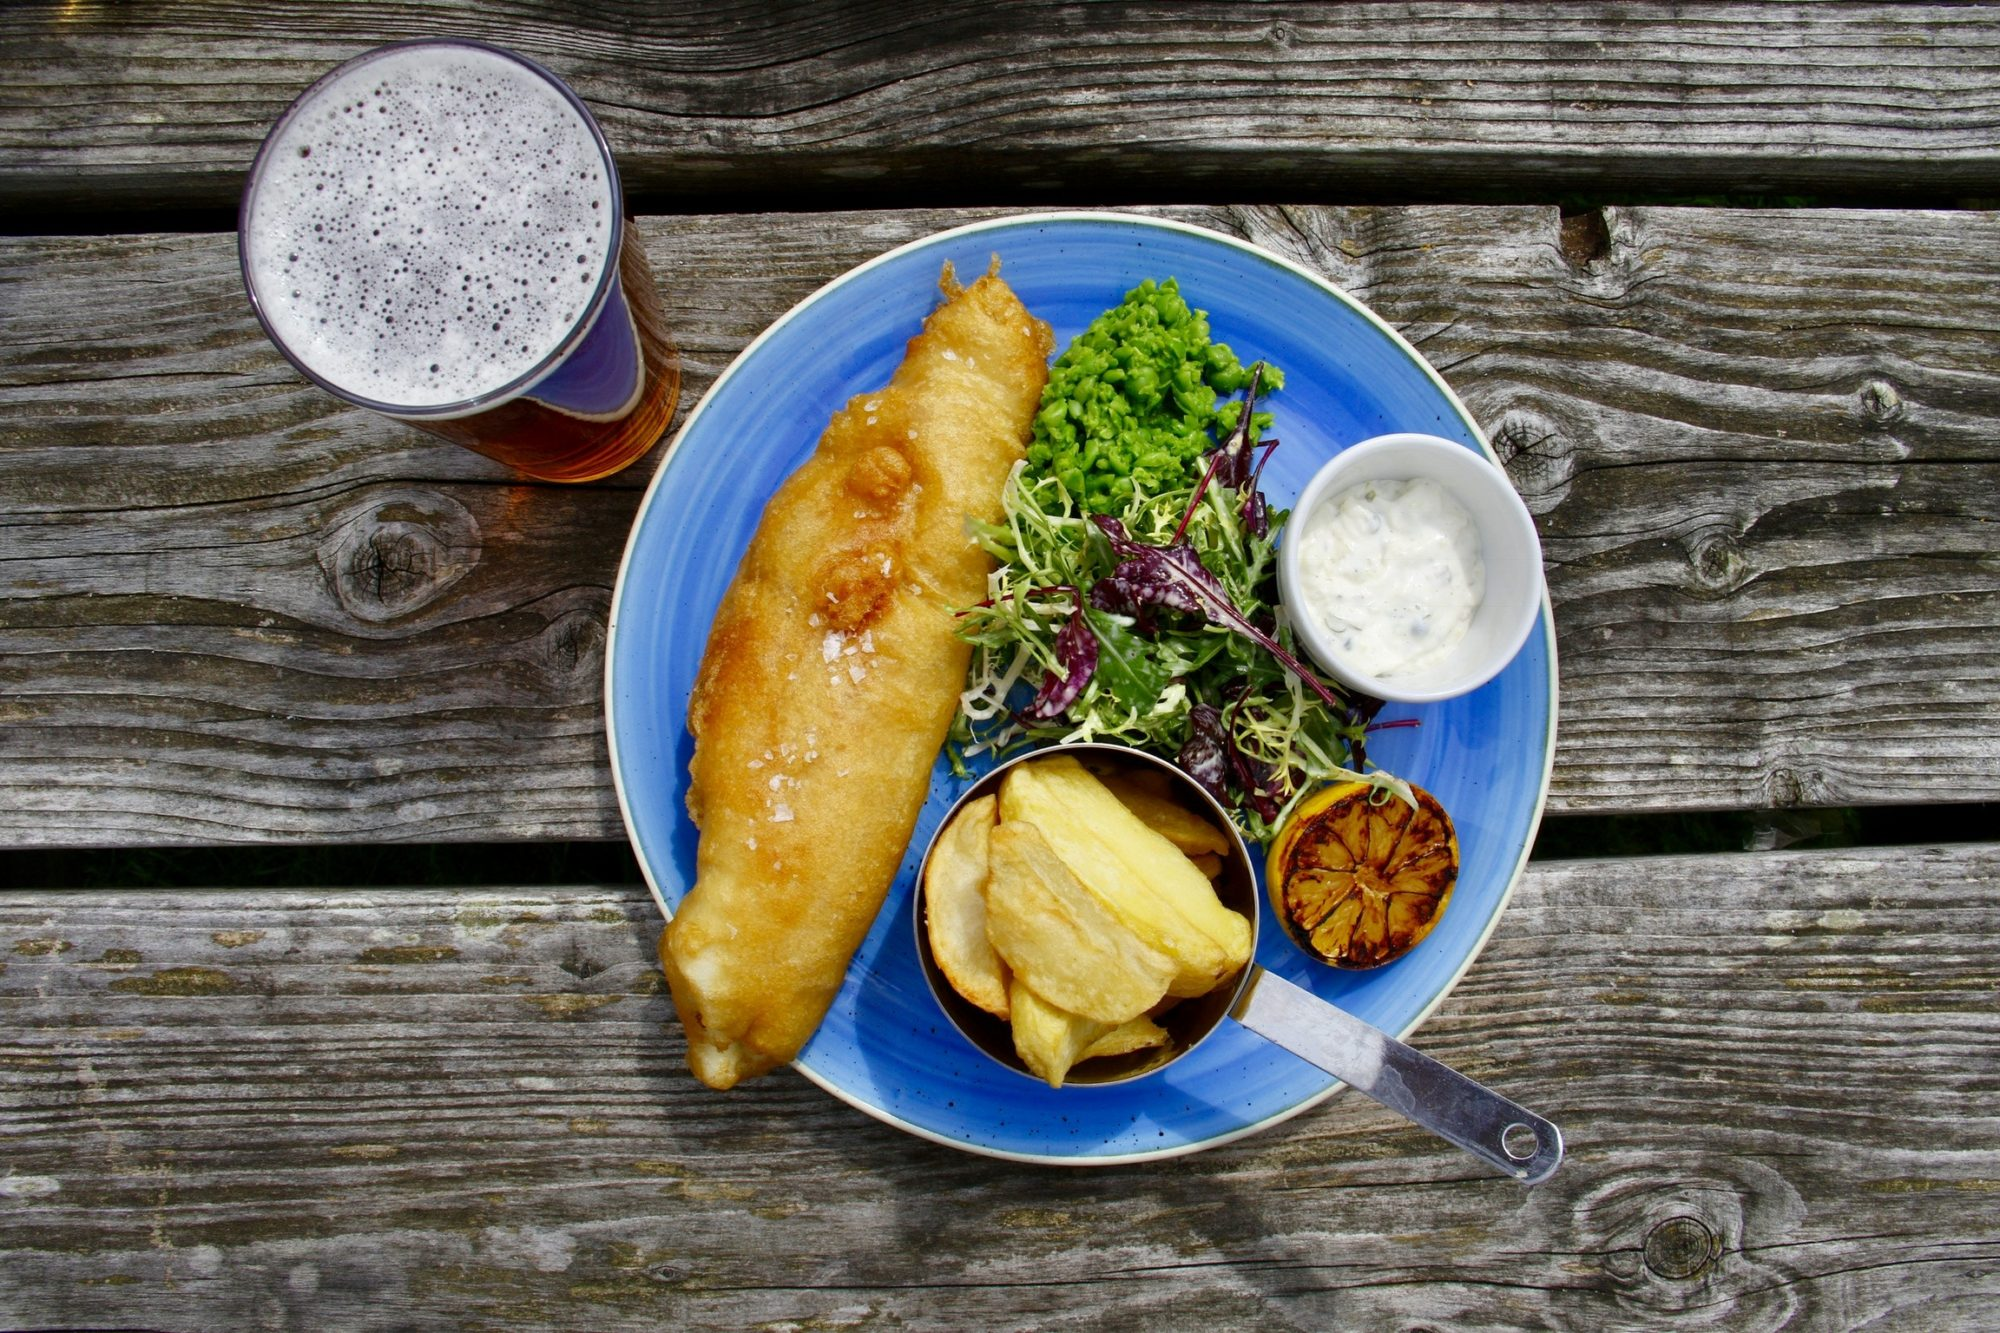 Fish and Chips, British Foods To Try